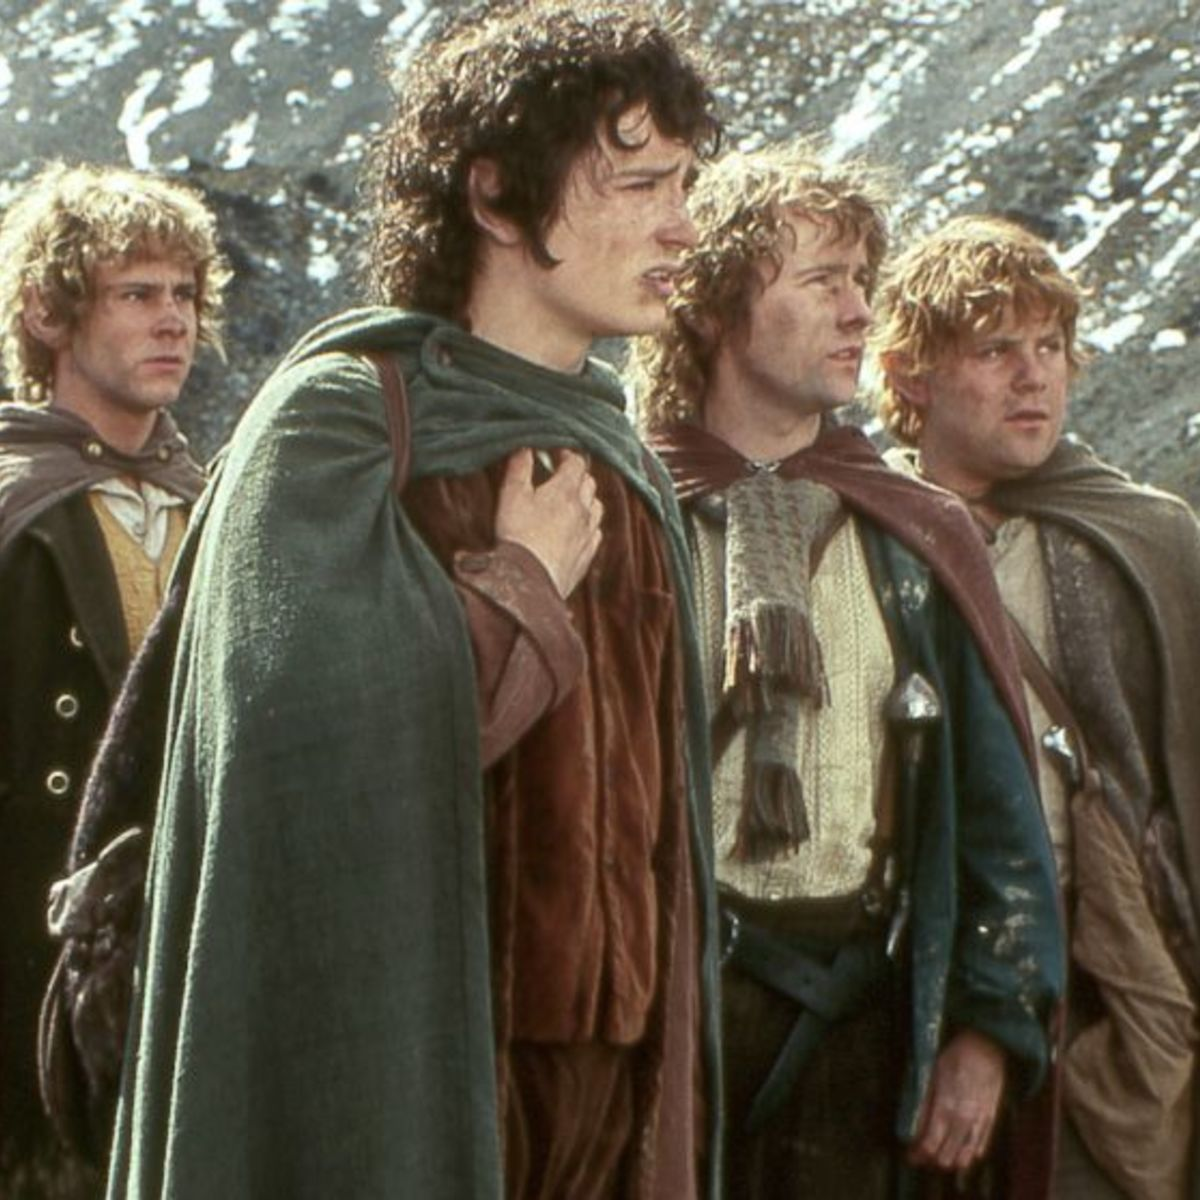 ap_the_lord_of_the_rings_fellowship_of_the_ring_jt_140209_2_16x9_992.jpg